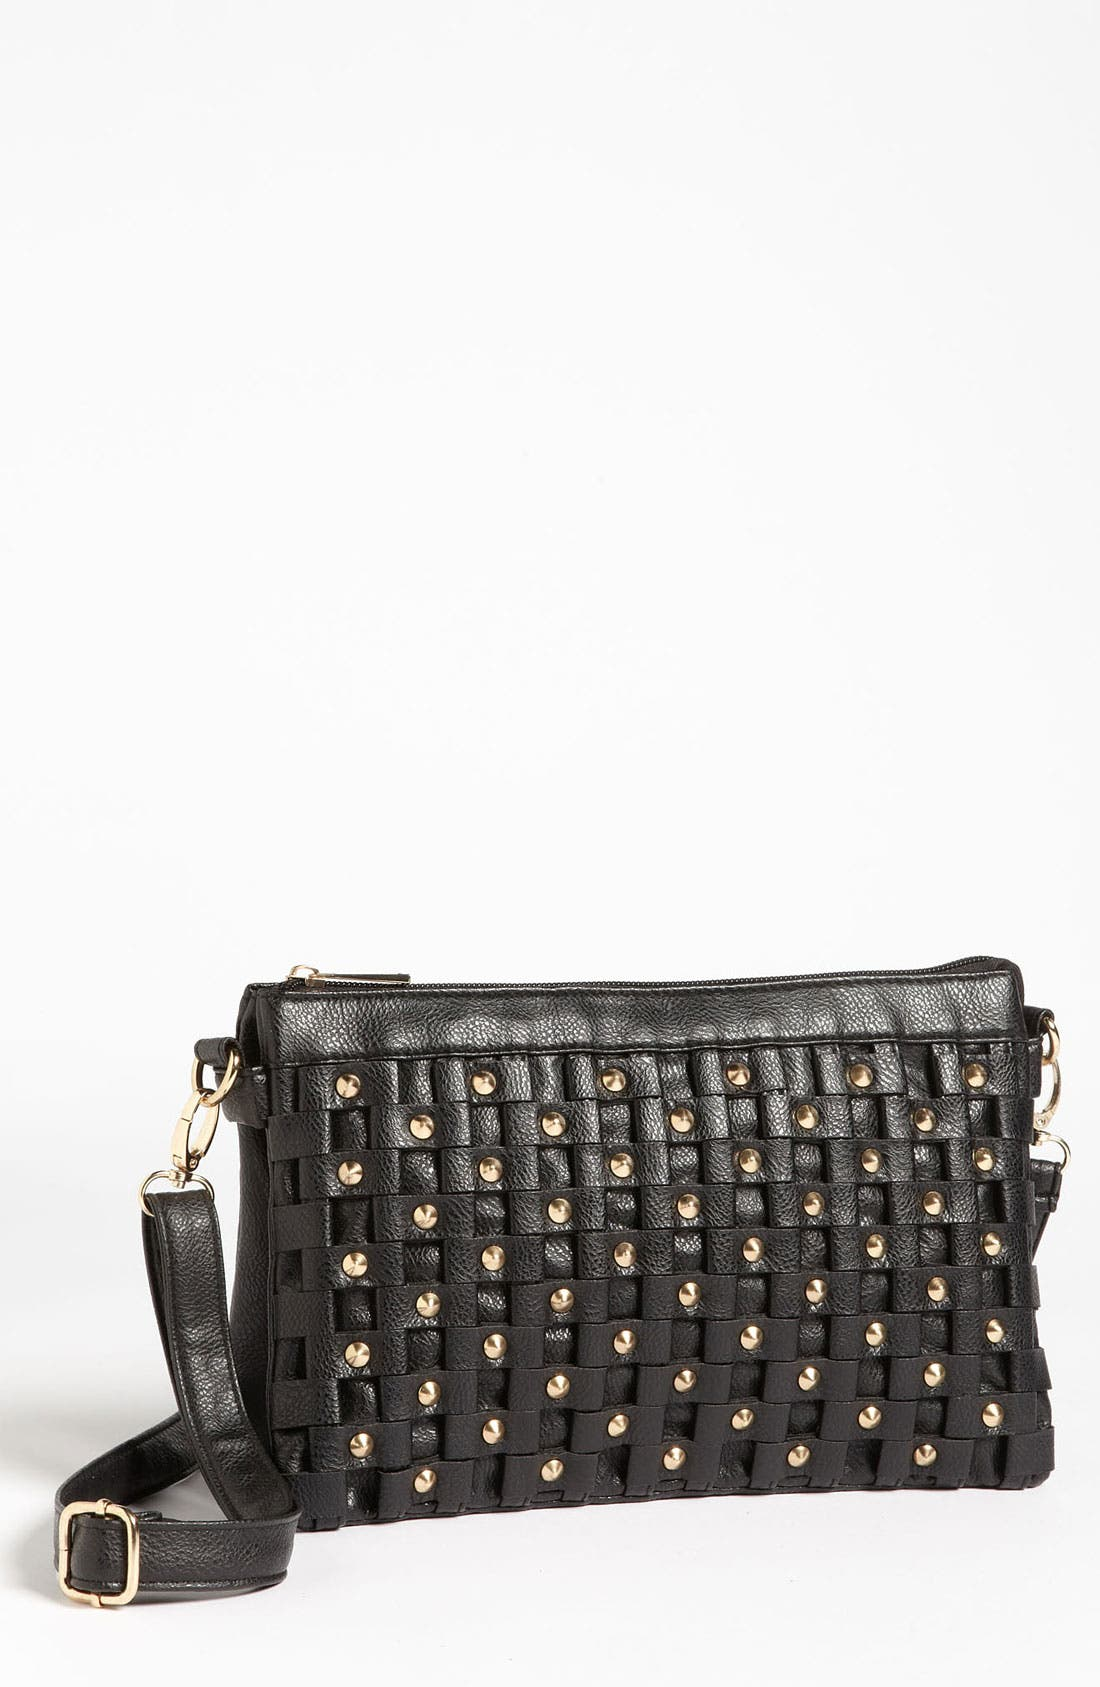 Main Image - Top Choice Studded Faux Leather Crossbody Clutch